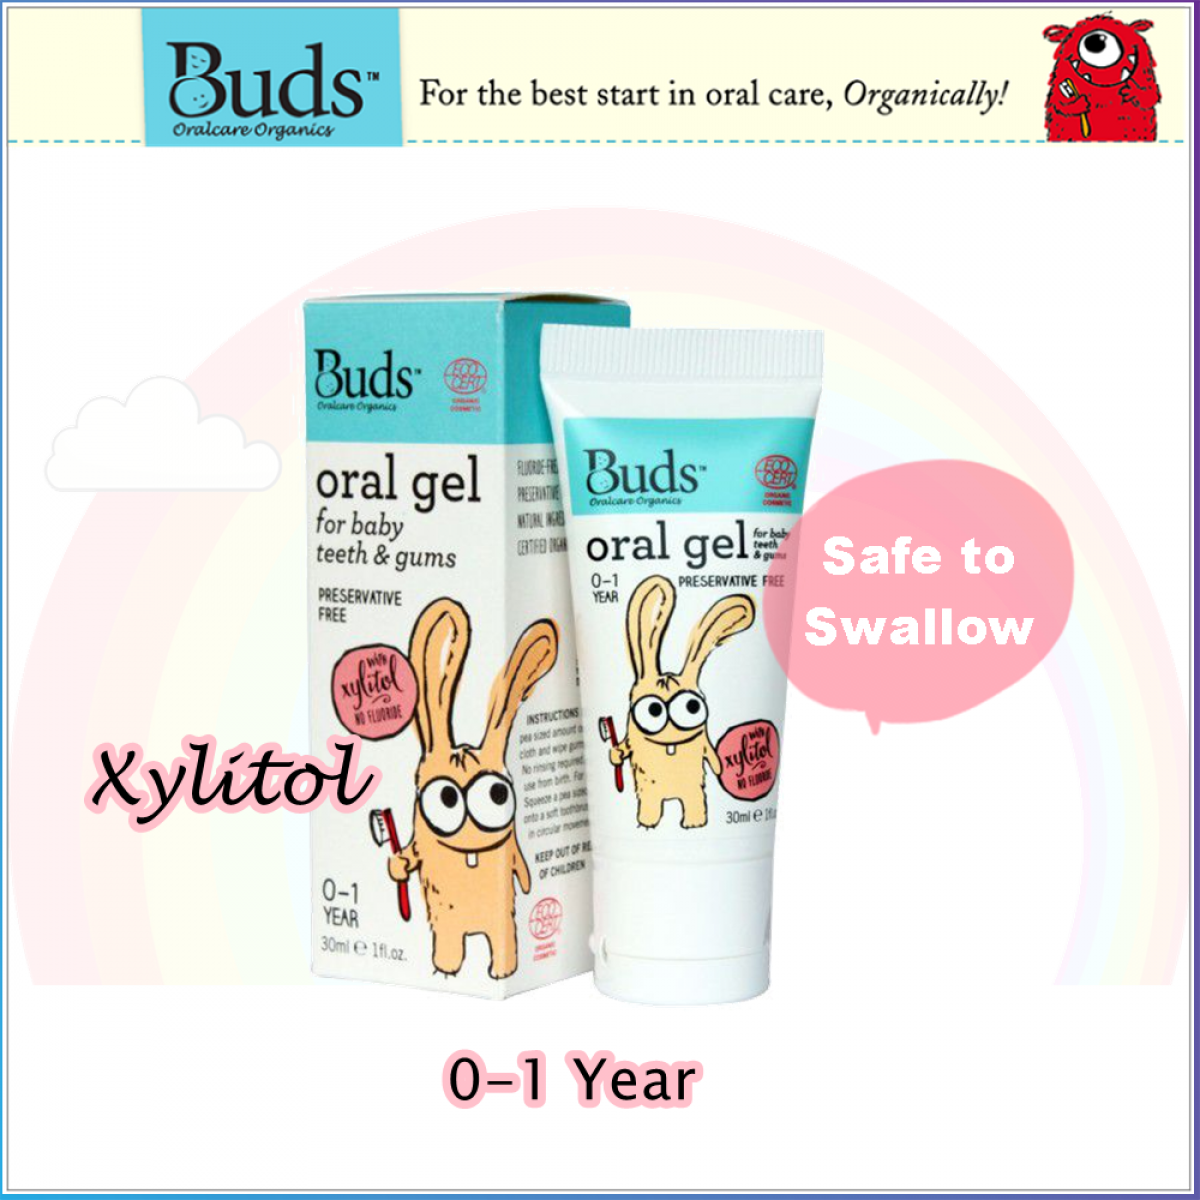 Buds Oral Gel for Baby Teeth & Gums with Xylitol 0-1 Year 30ml (Expiry: Feb 2020)